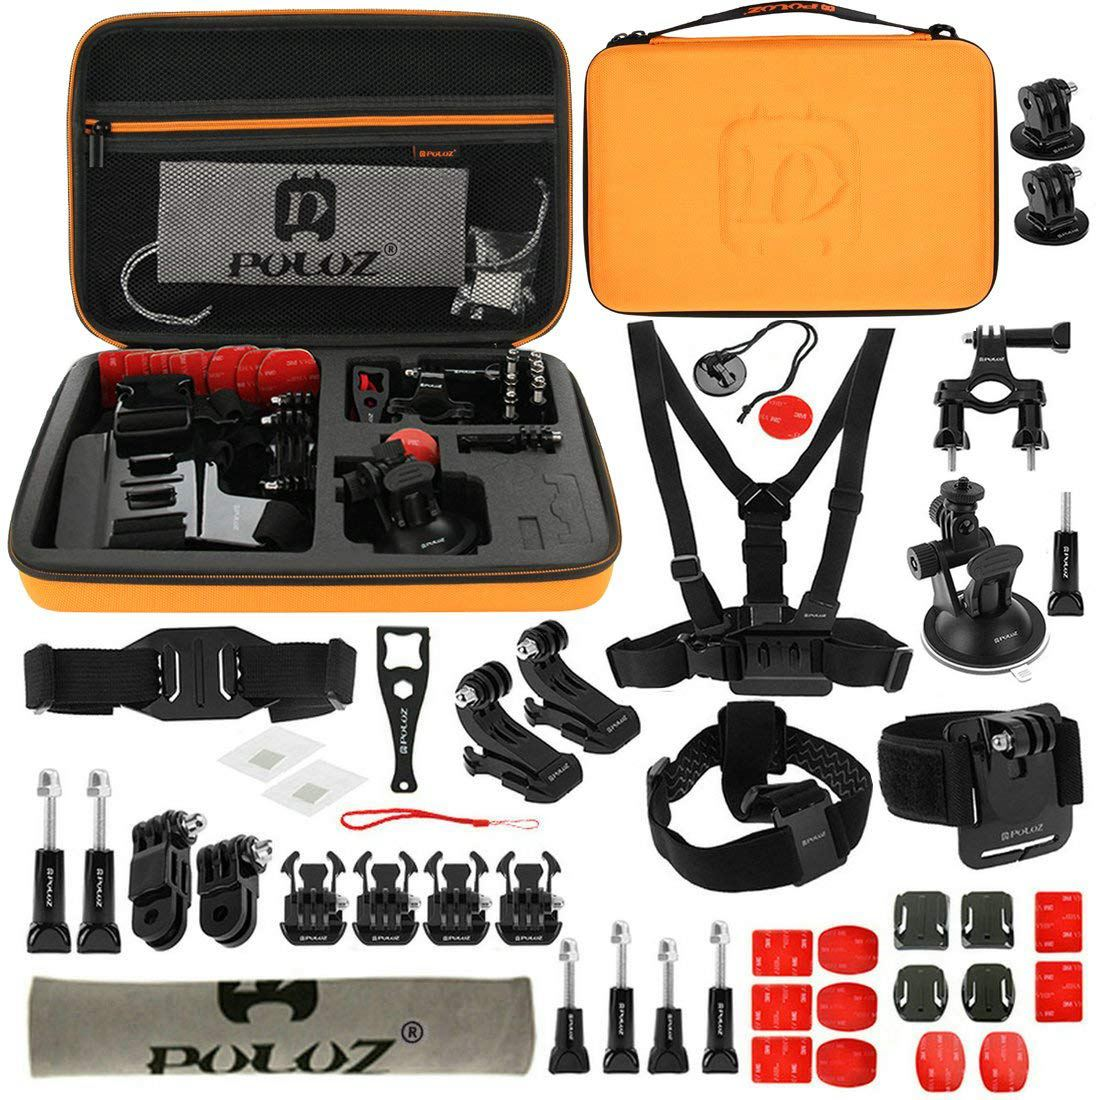 PULUZ 45 in 1 Accessories(Chest Strap+3 Way Pivot Arms+J Hook Buckle+Wrist Strap+Helmet Strap Surface Mounts+Tripod Adapter+St